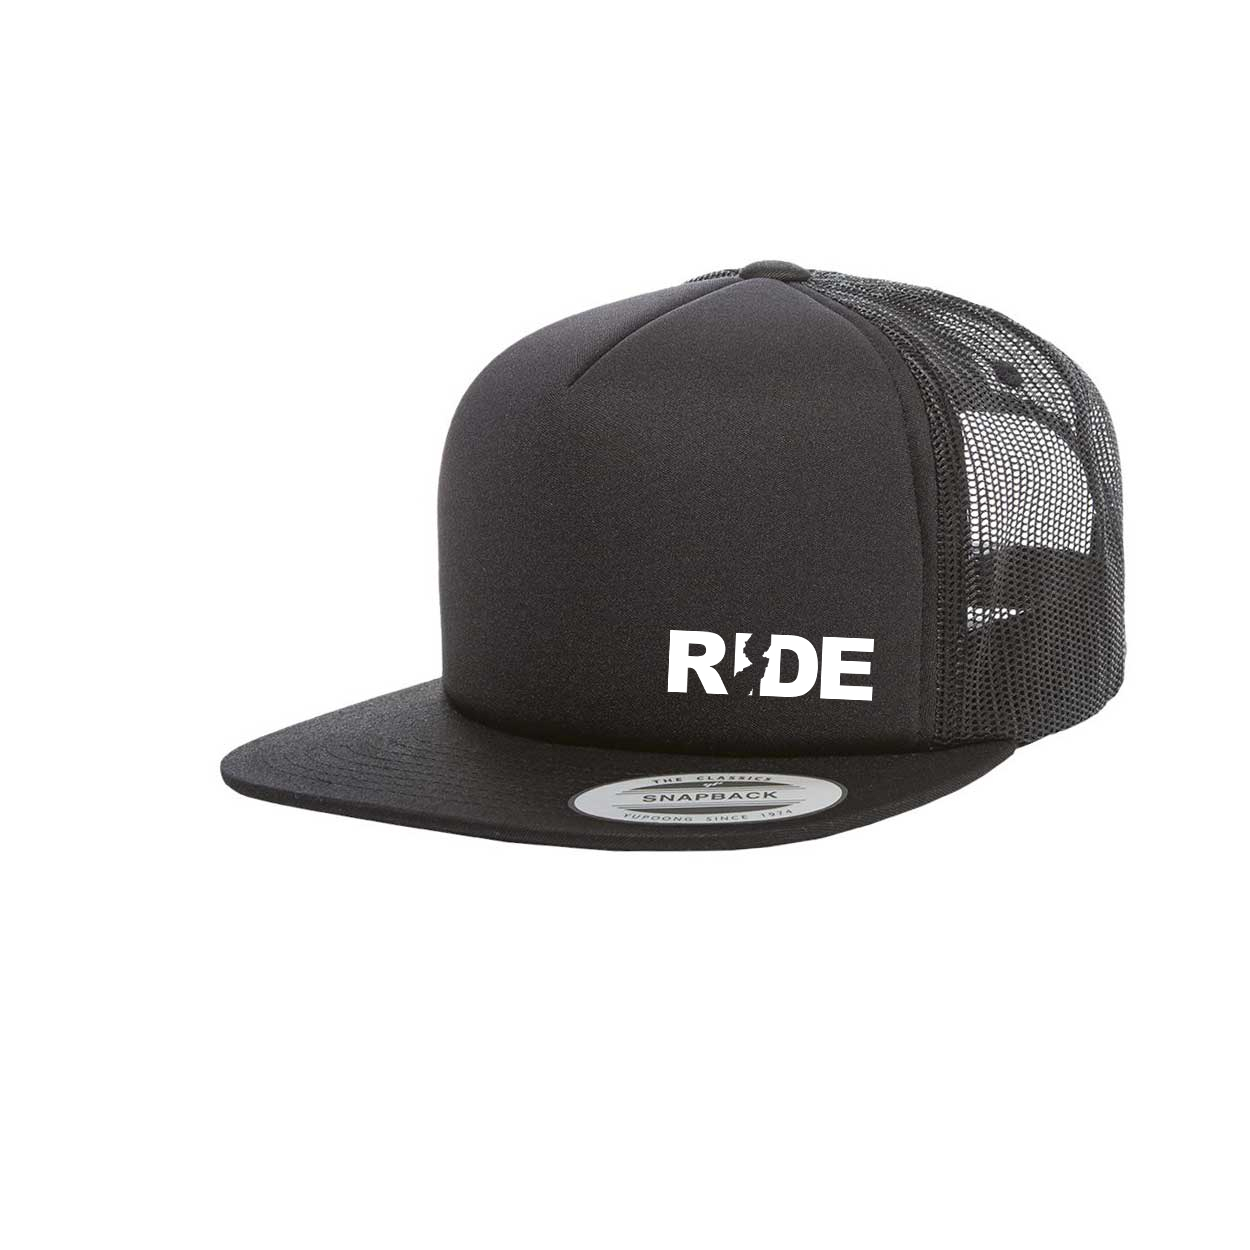 Ride New Jersey Night Out Premium Foam Flat Brim Snapback Hat Black (White Logo)